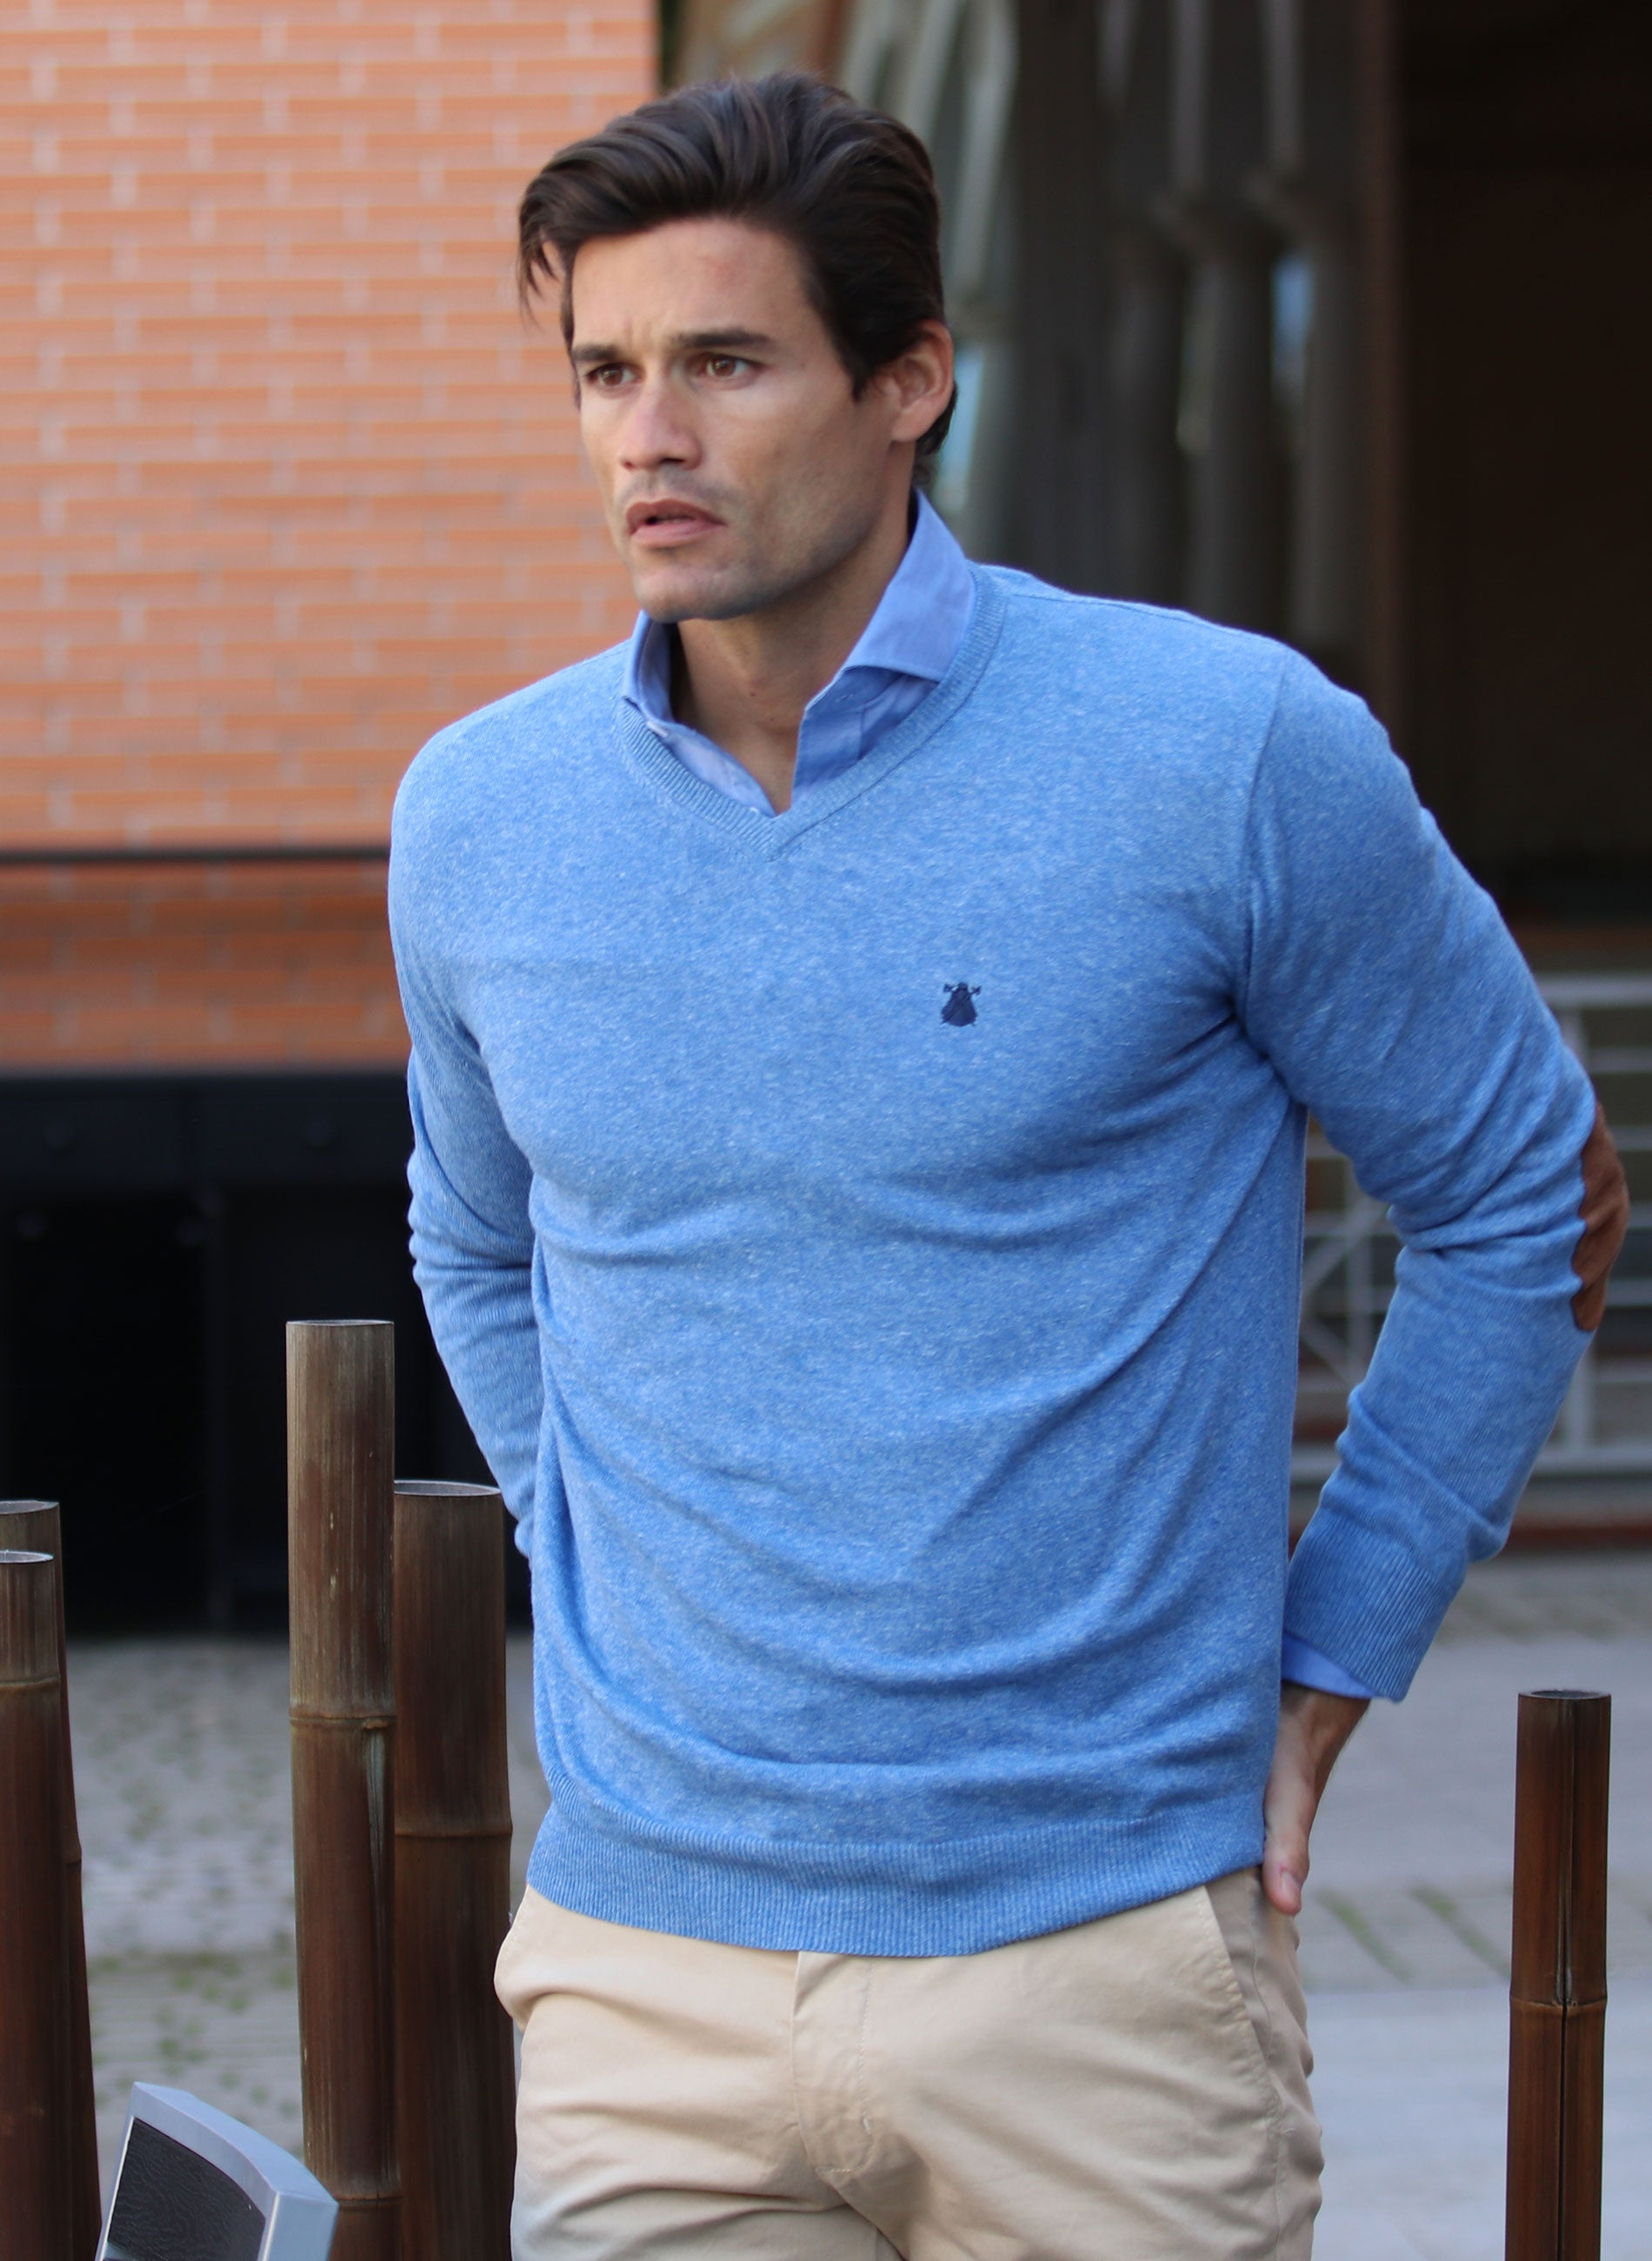 Men's Blue V-Neck Sweater Elbow Patches